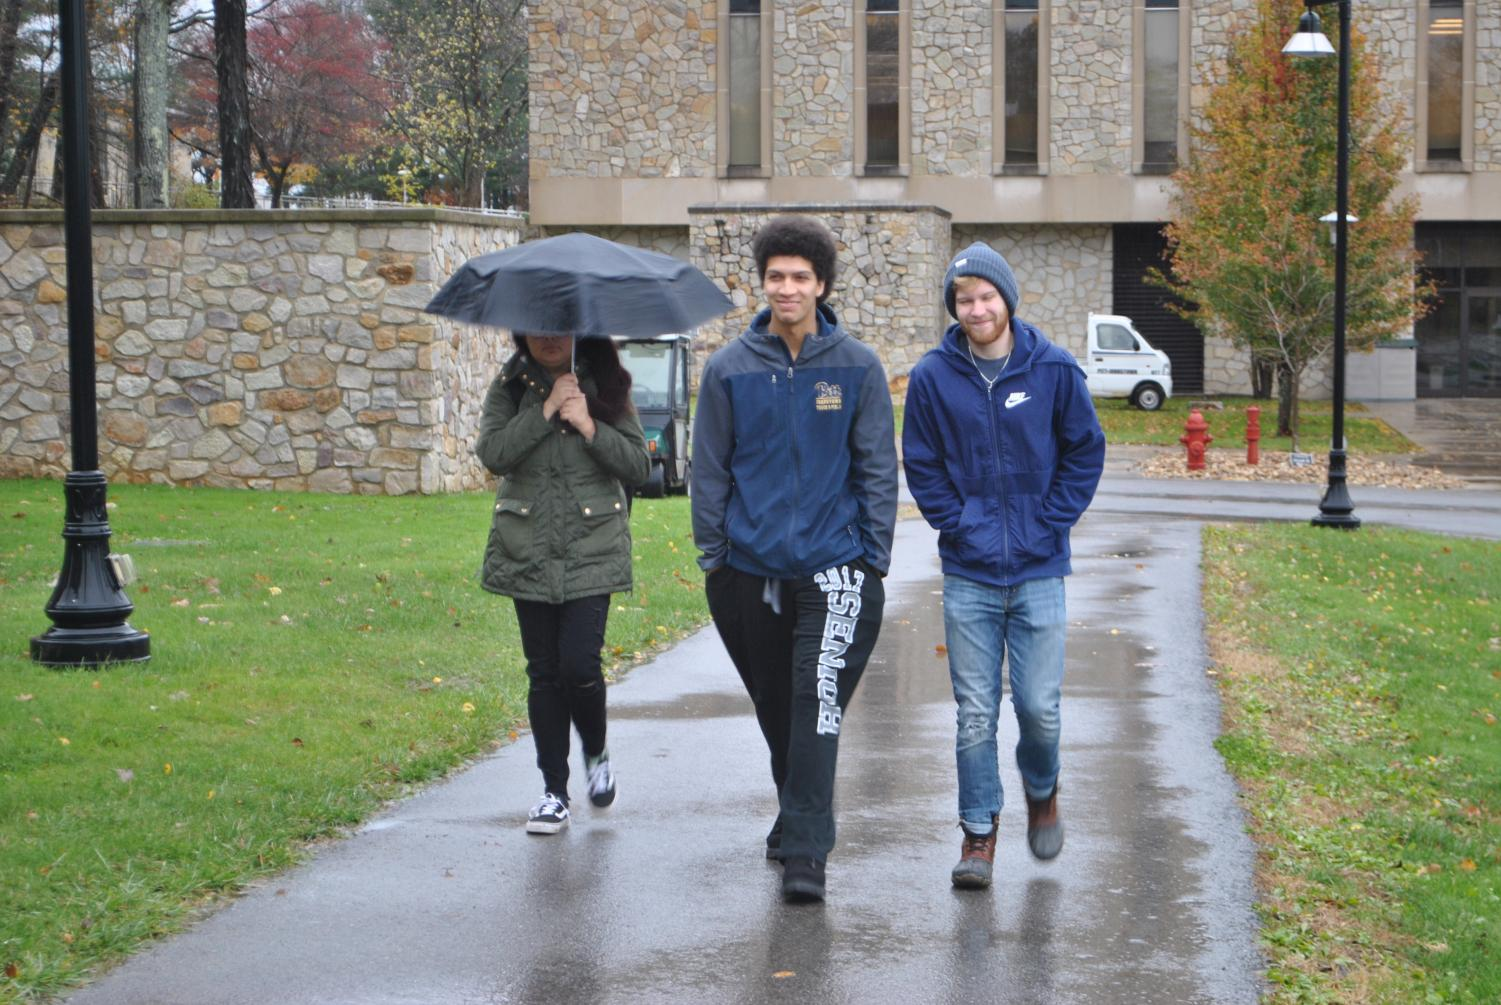 Sophomores Chloe Guerra, Zach Davis and Richard Hartnett brave the cold, wind and rain Friday with fall jackets.